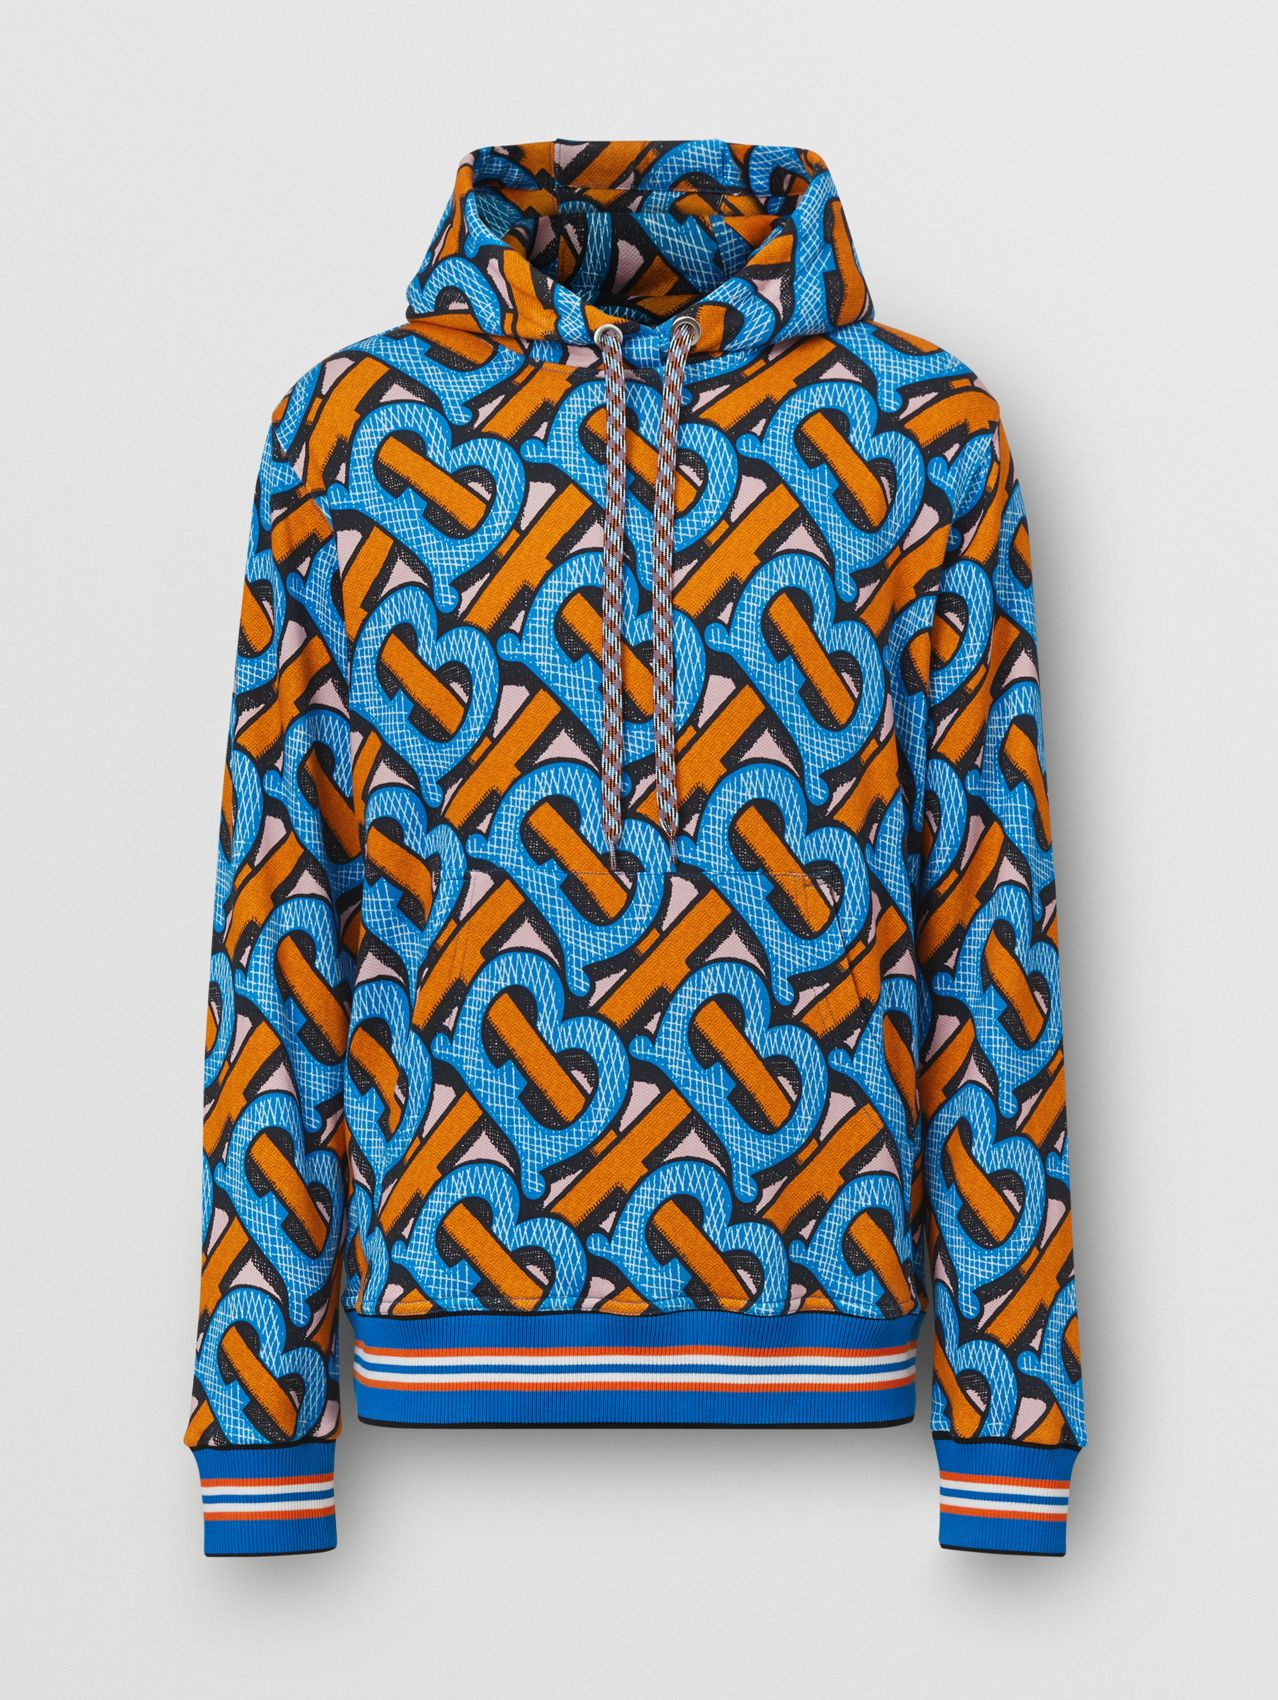 Monogram Print Cotton Hoodie – Unisex in Bright Cobalt